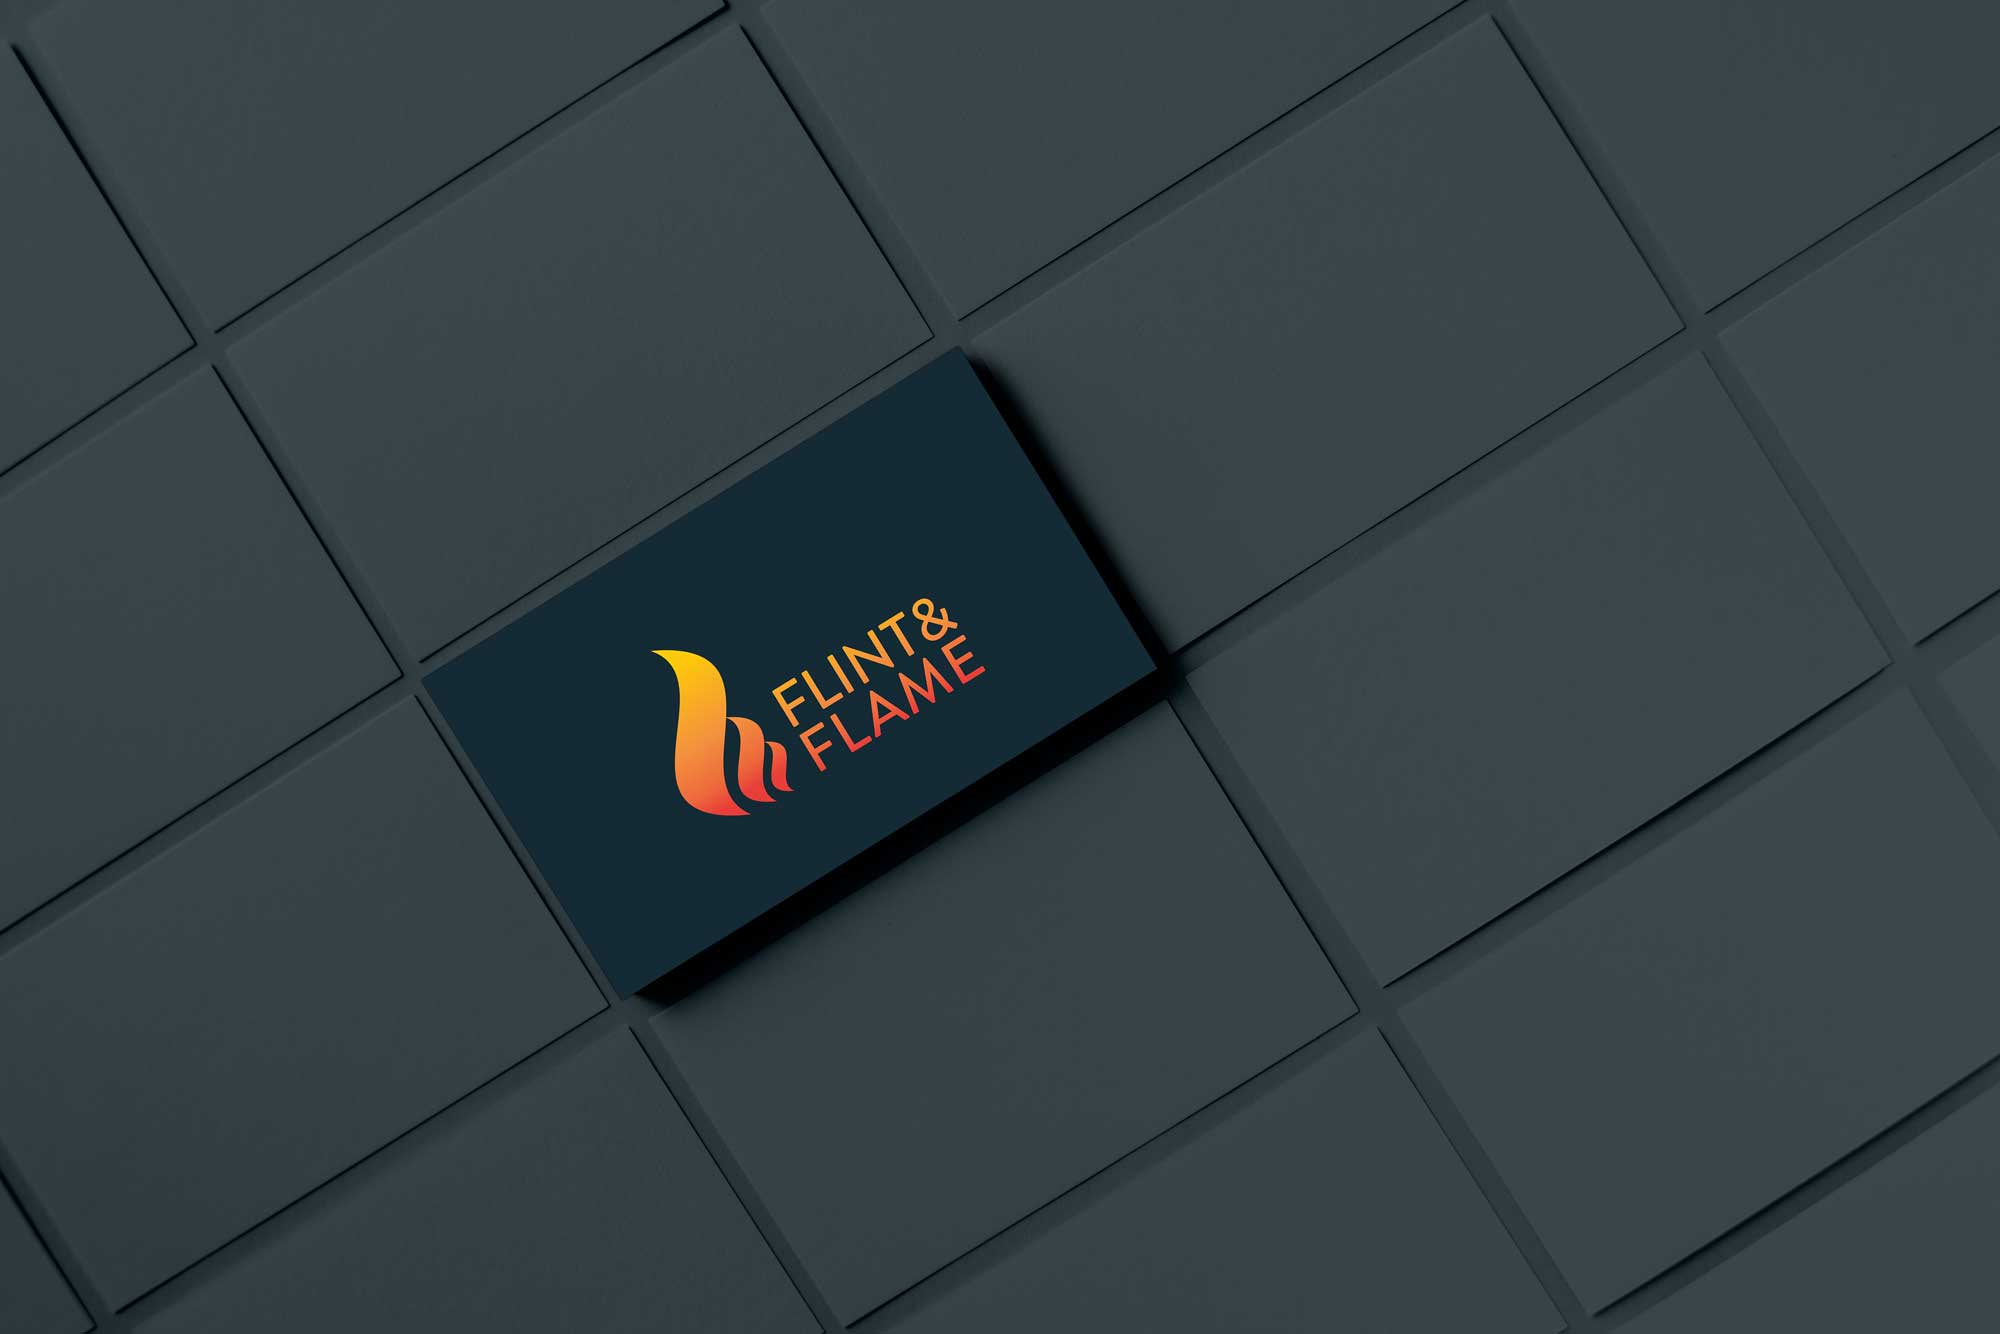 Flint & Flame logo business card mockup